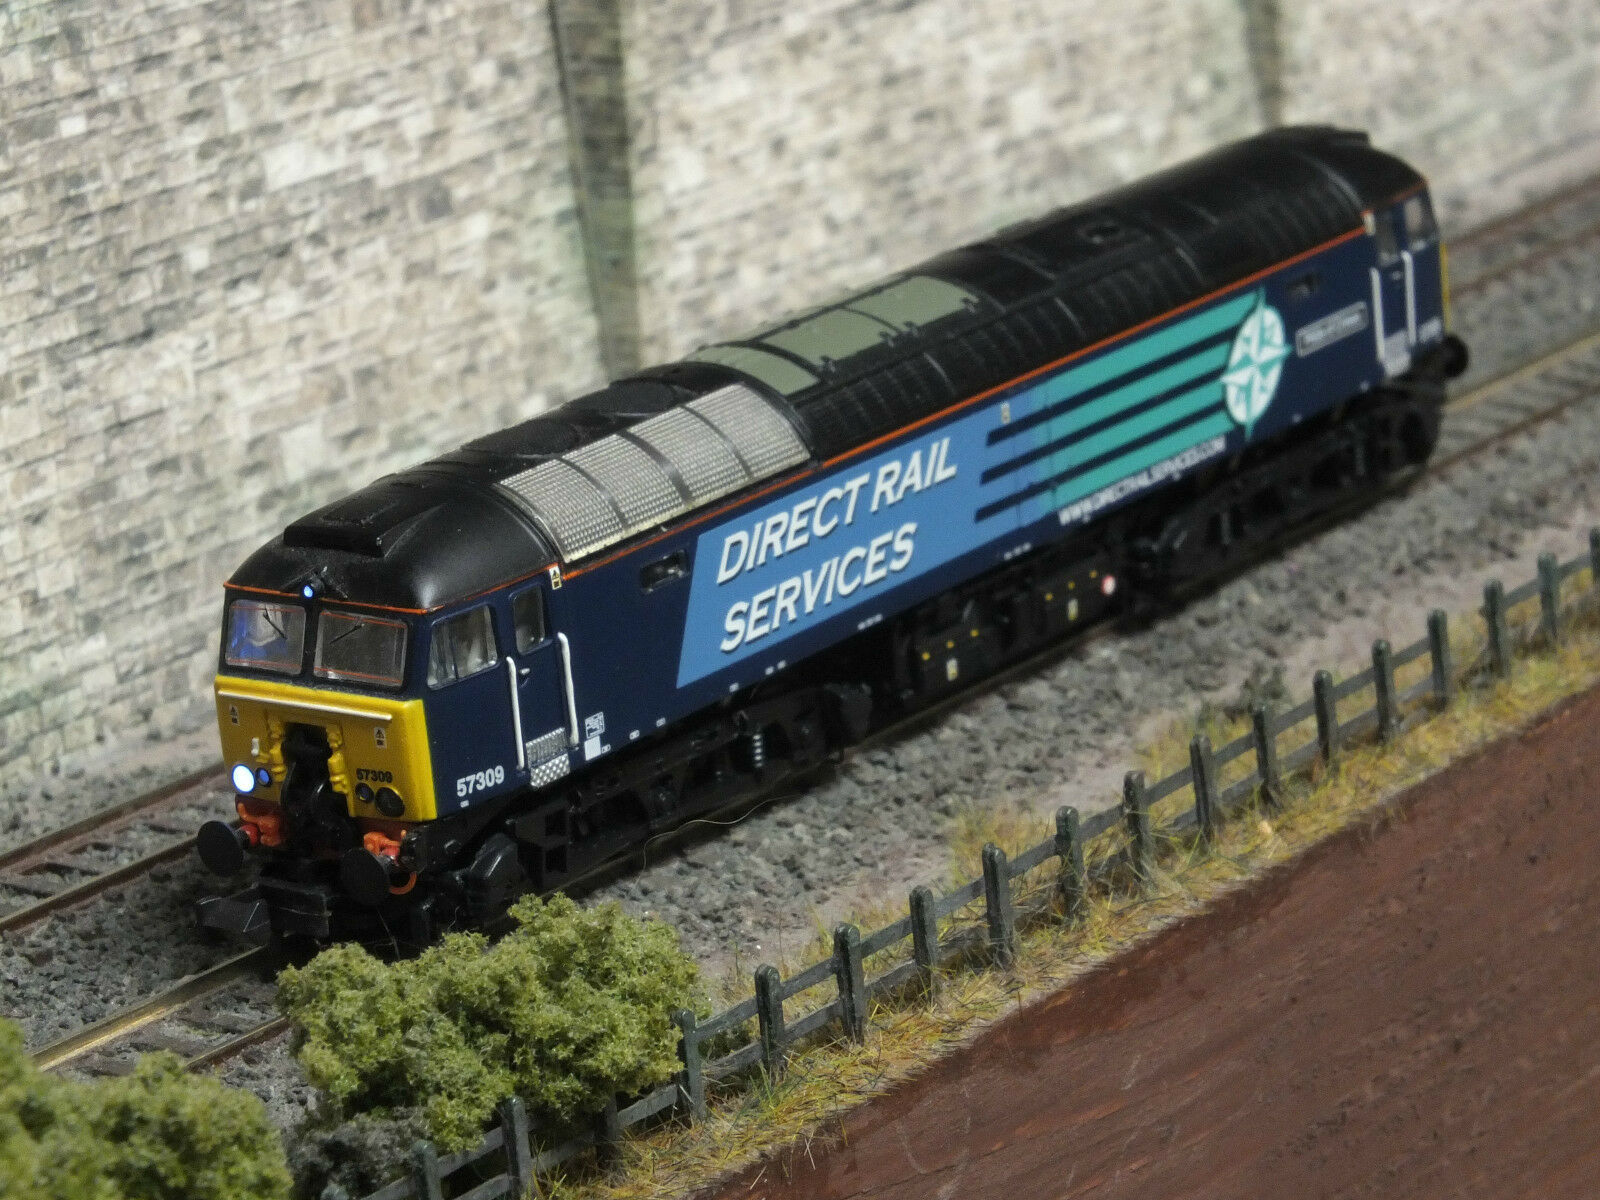 371-657 GRAHAM FARISH CLASS 57 309 DRS DCC SOUND LOCOMOTIVE N GAUGE LEGOMAN